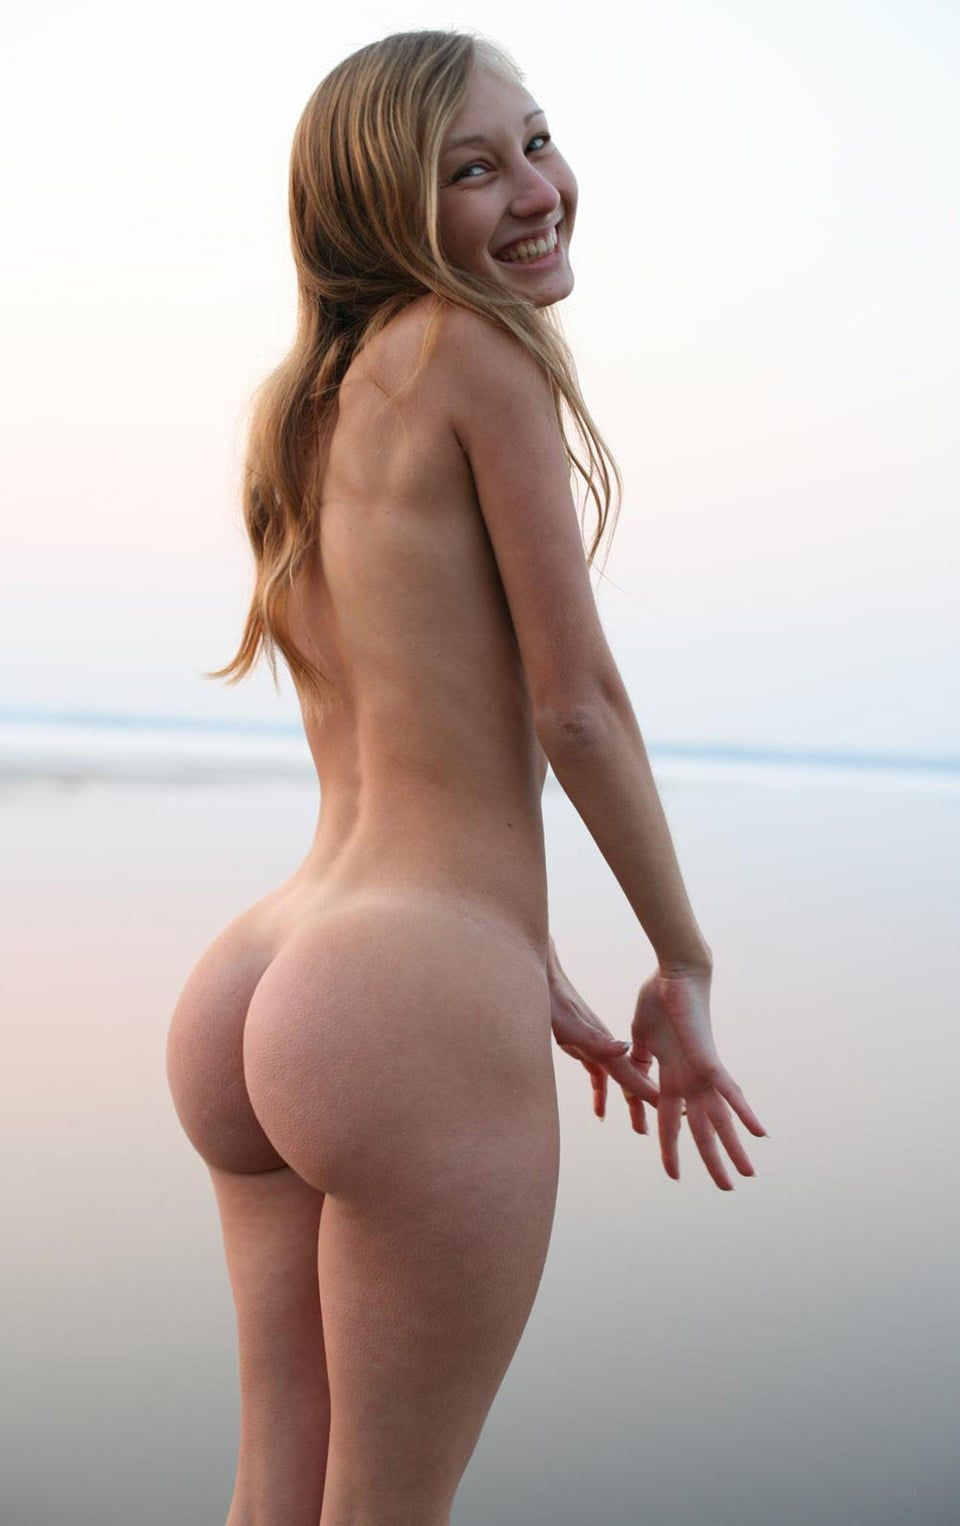 Chicks with ass nude